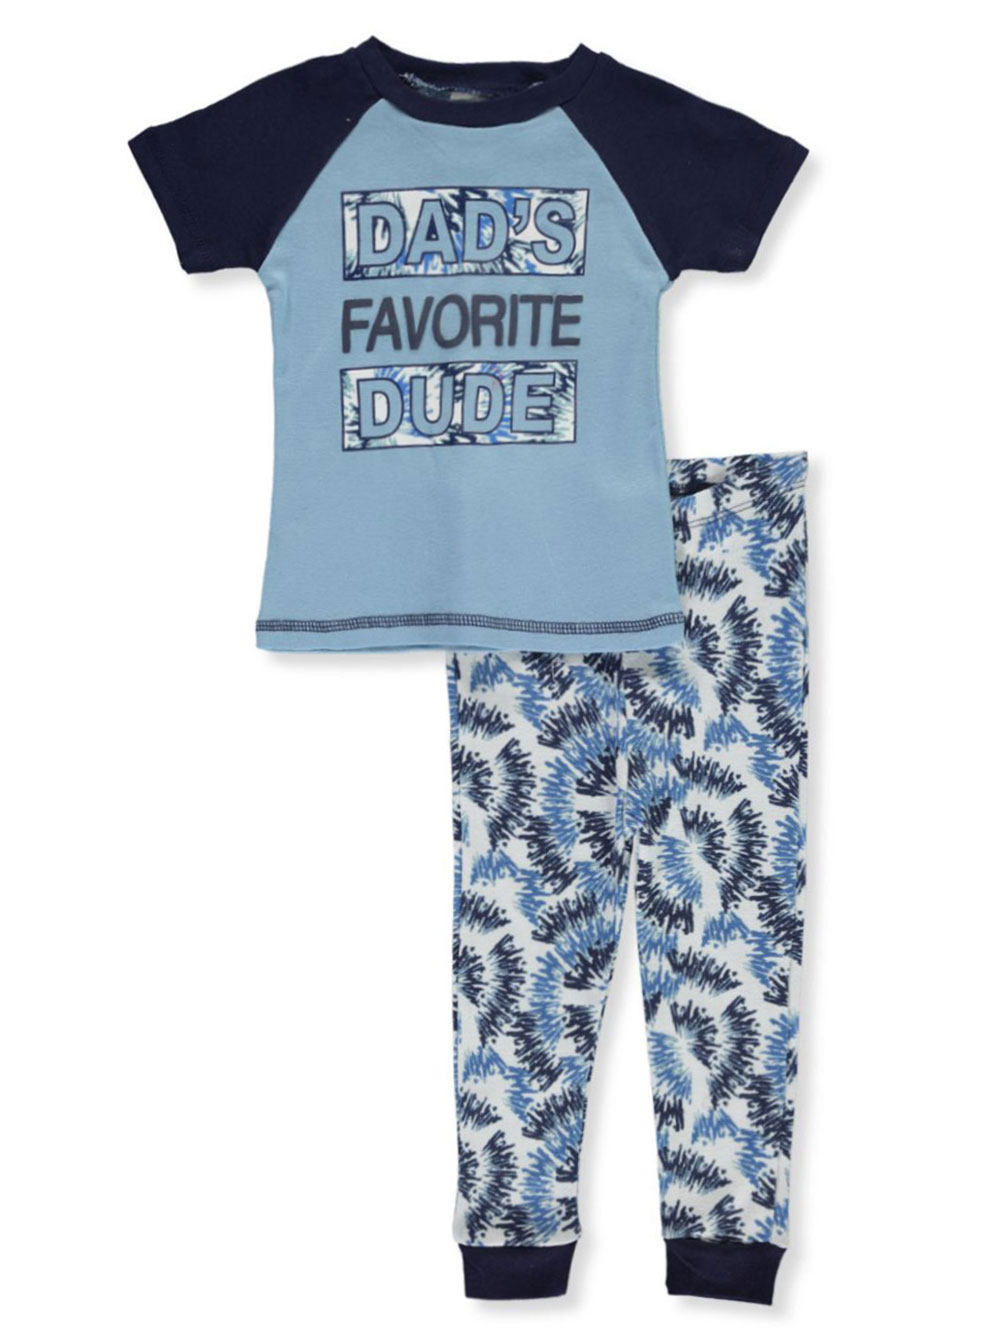 Boys White and Multicolor Sleepwear